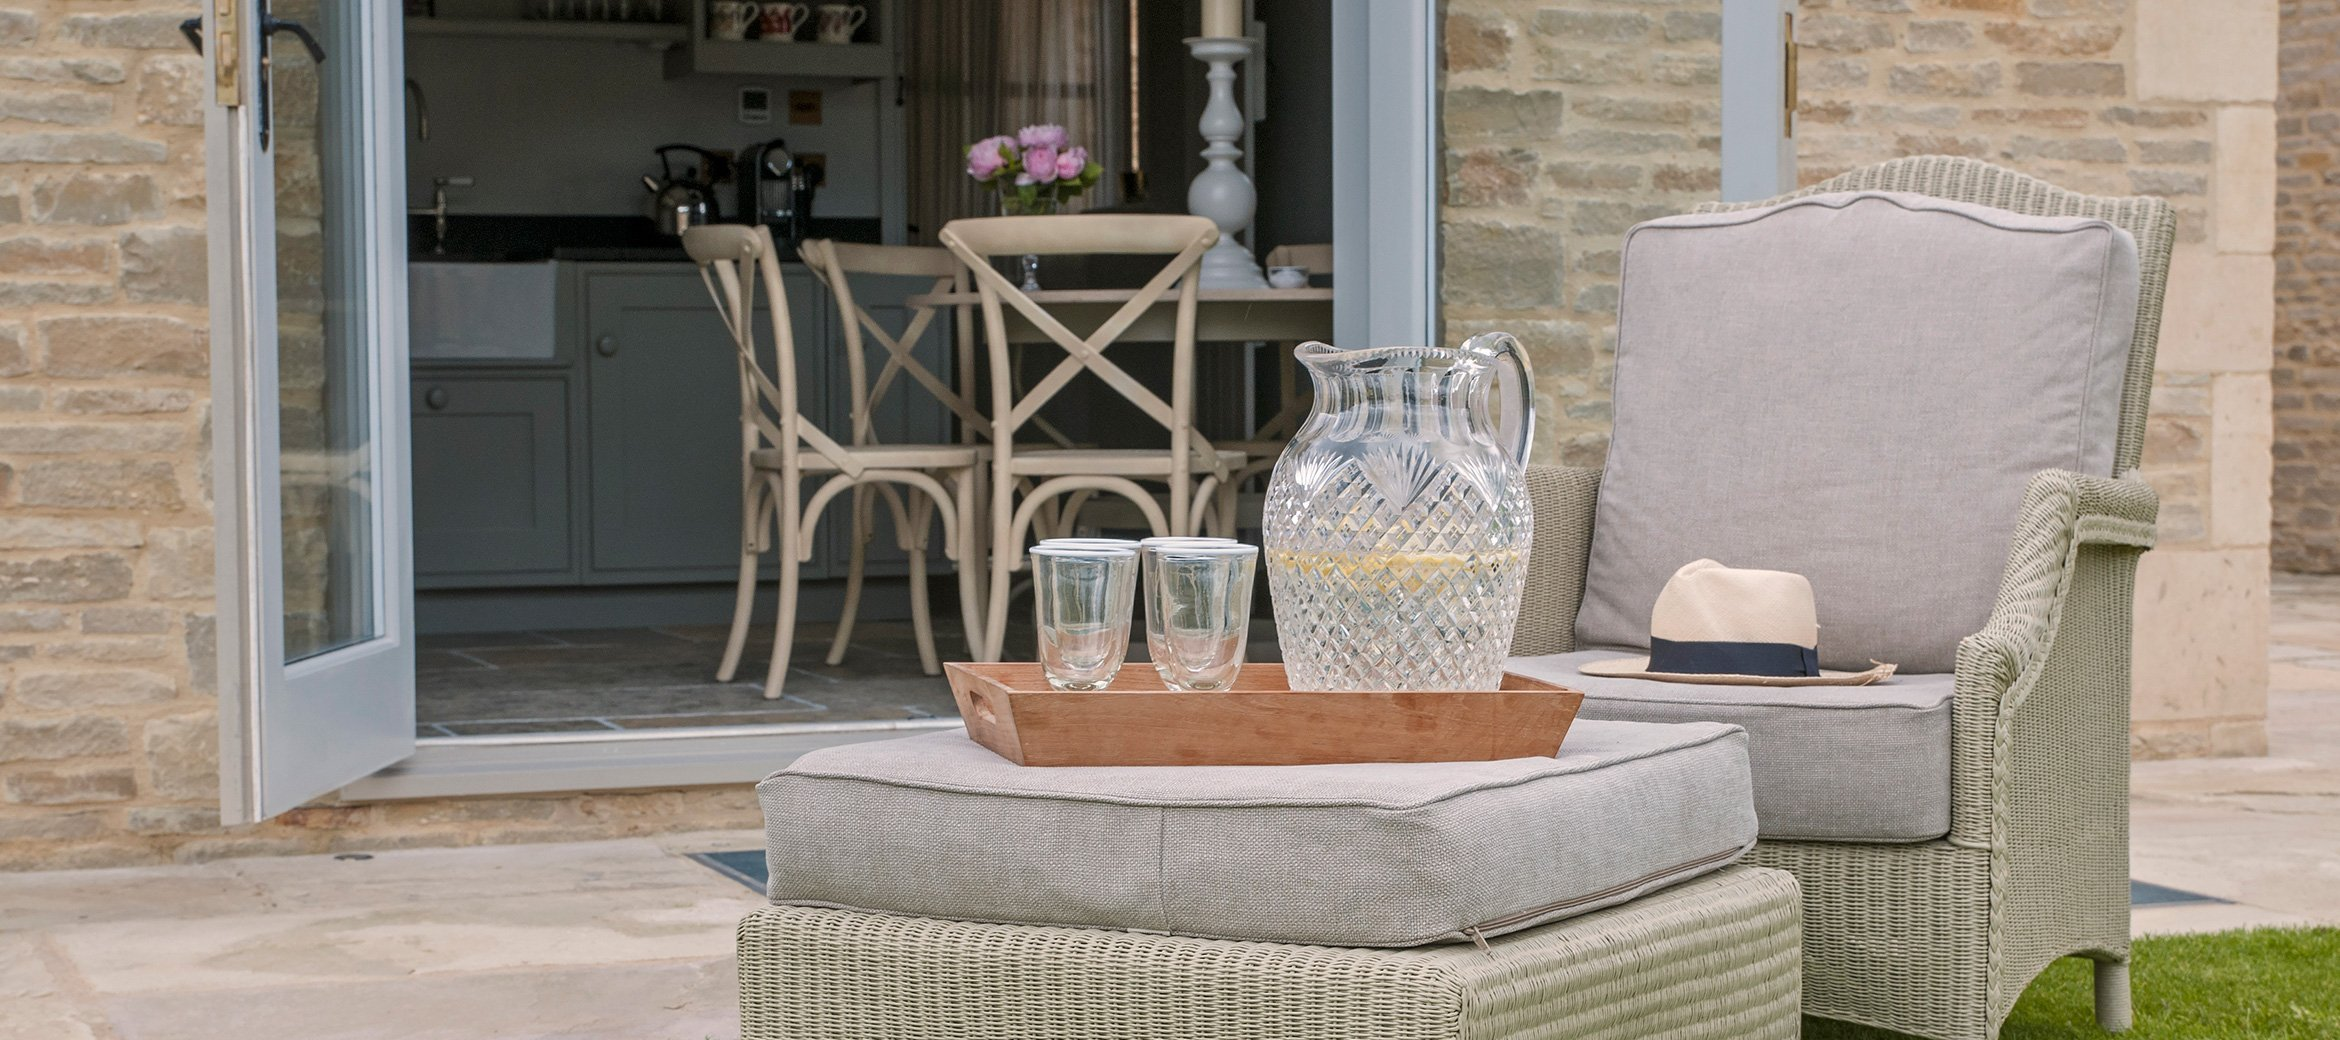 stable-luxury-cotswold-cottage-garden-chair